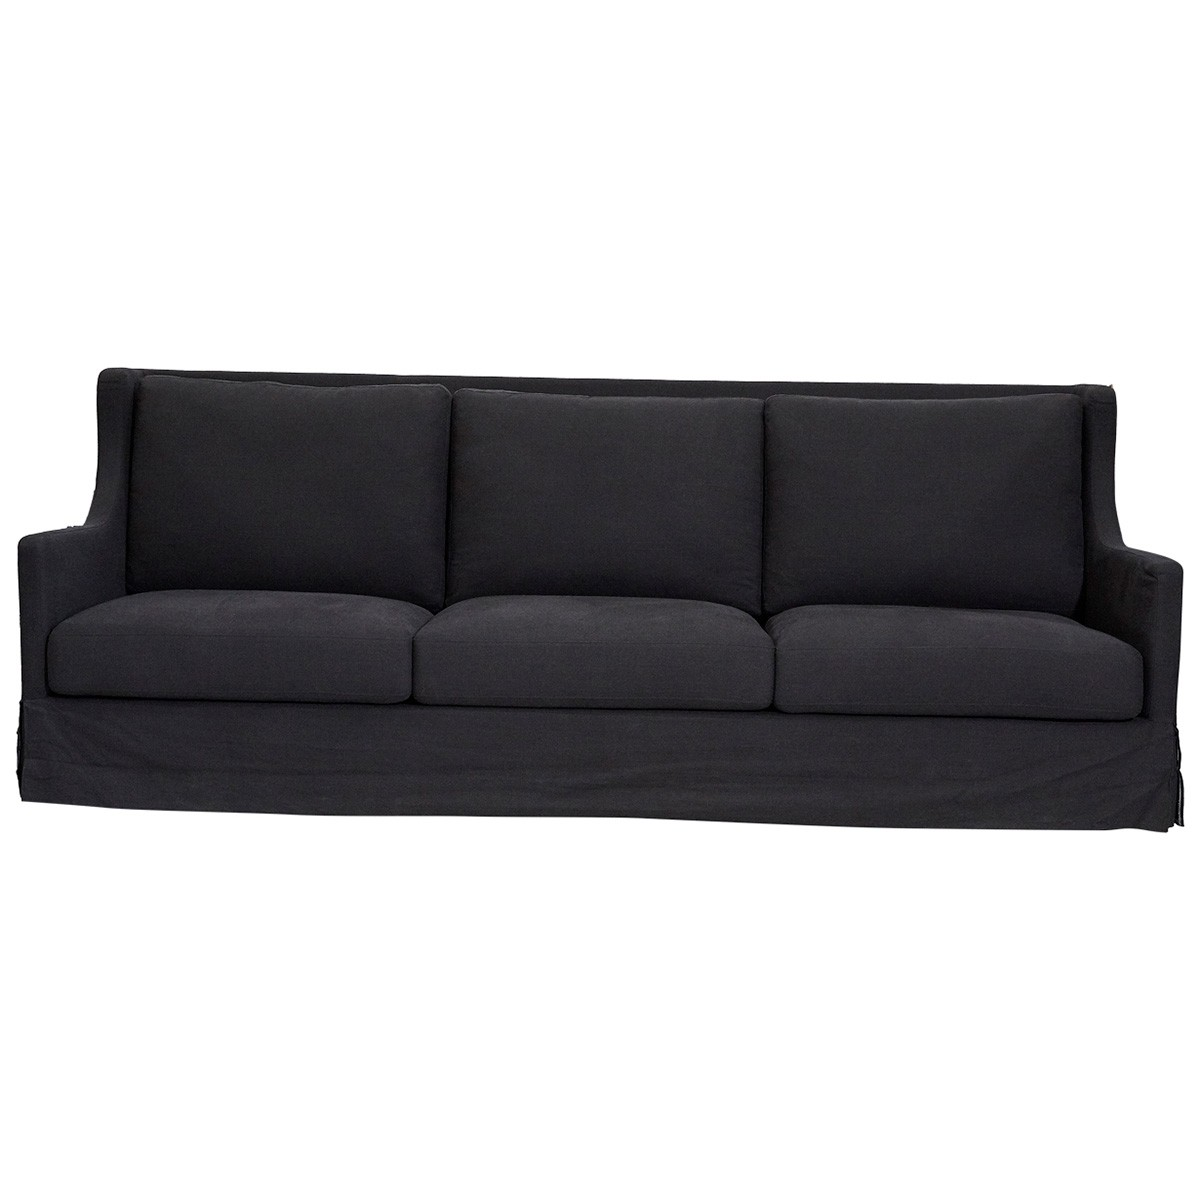 South Hampton Linen Sofa, 3 Seater